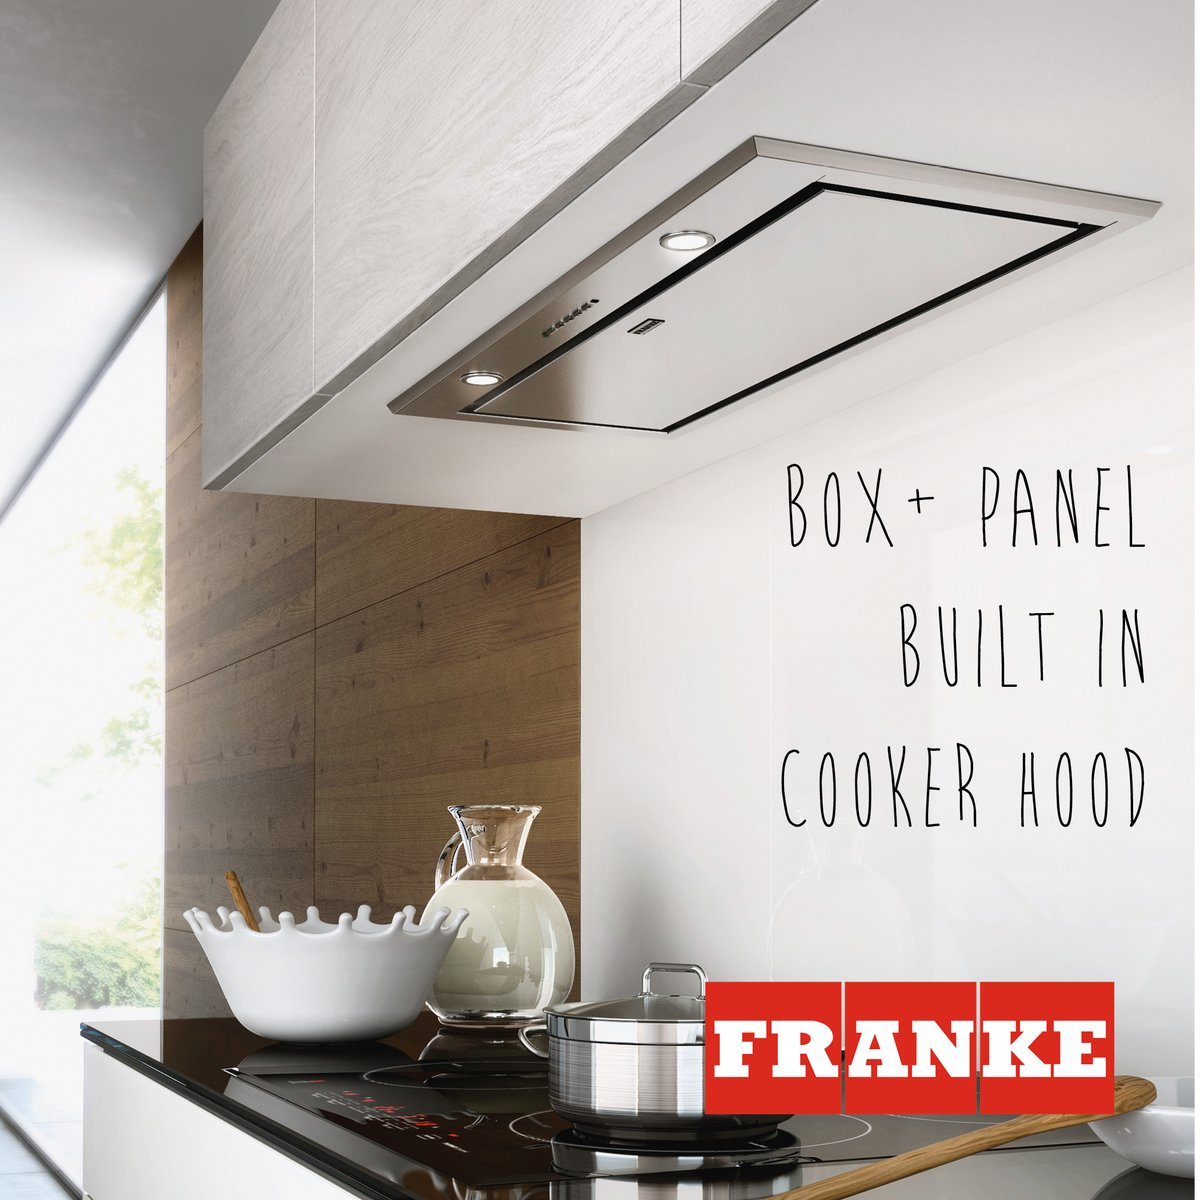 The Box+ panel cooker hood is a stylish built in hood which offers great benefits of perimetric extraction combined with crisp, gleaming good looks. It's slim 5mm profile below the cabinet gives a streamlined aesthetic, perfect for a compact kitchen. ow.ly/LrxK50GhcAy